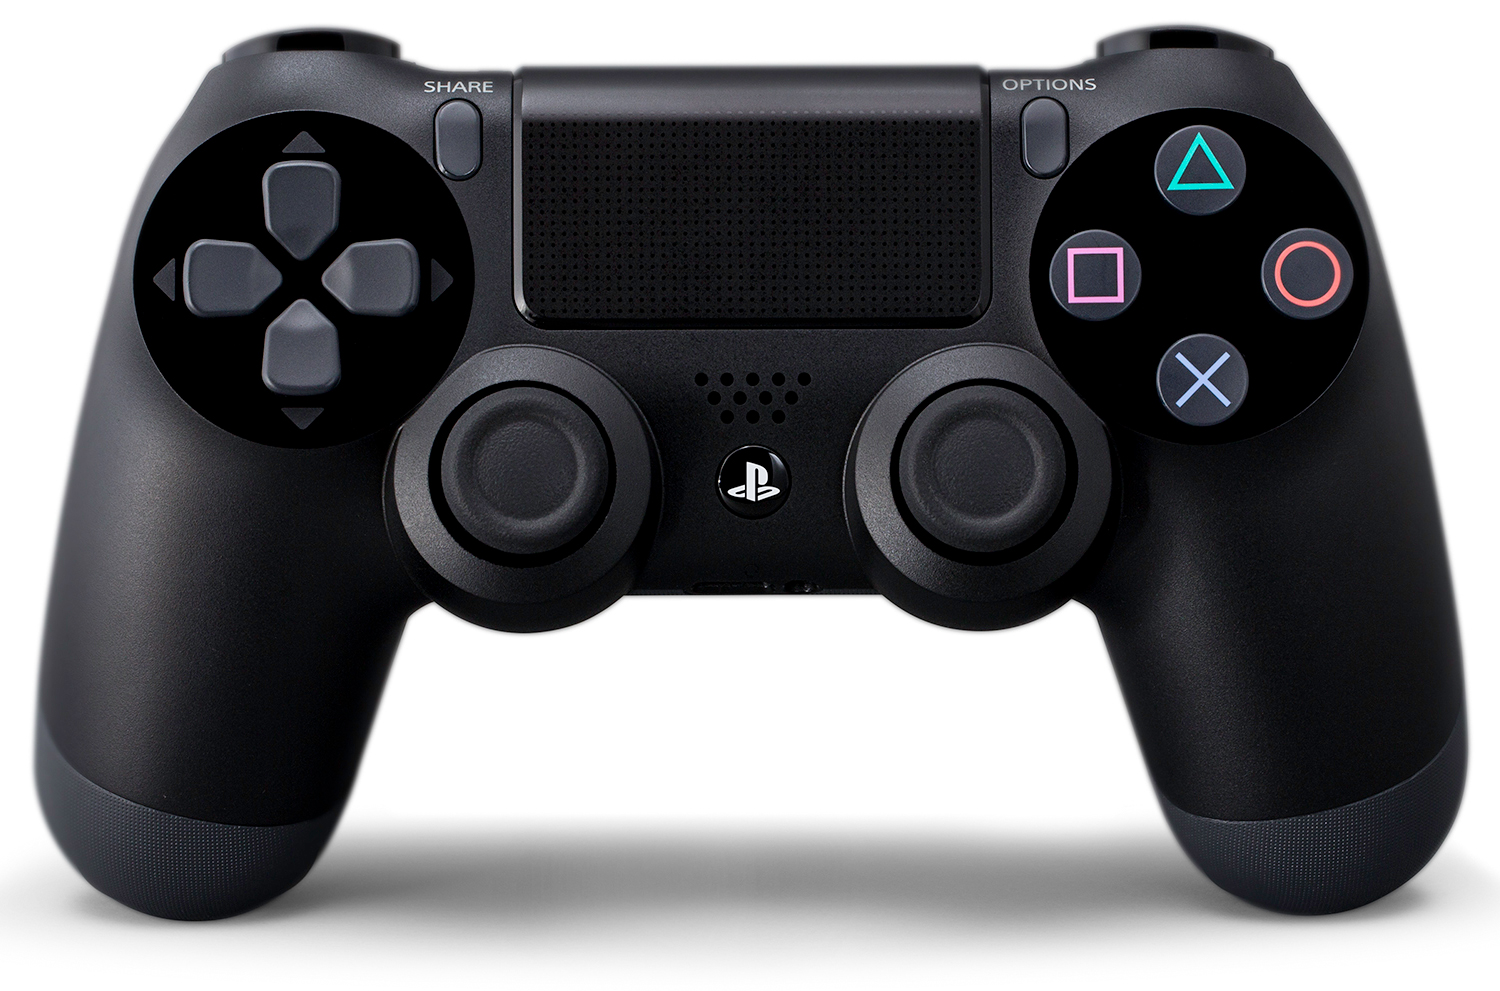 Game Controllers For Ps4 : Dualshock controller works with mac os computers